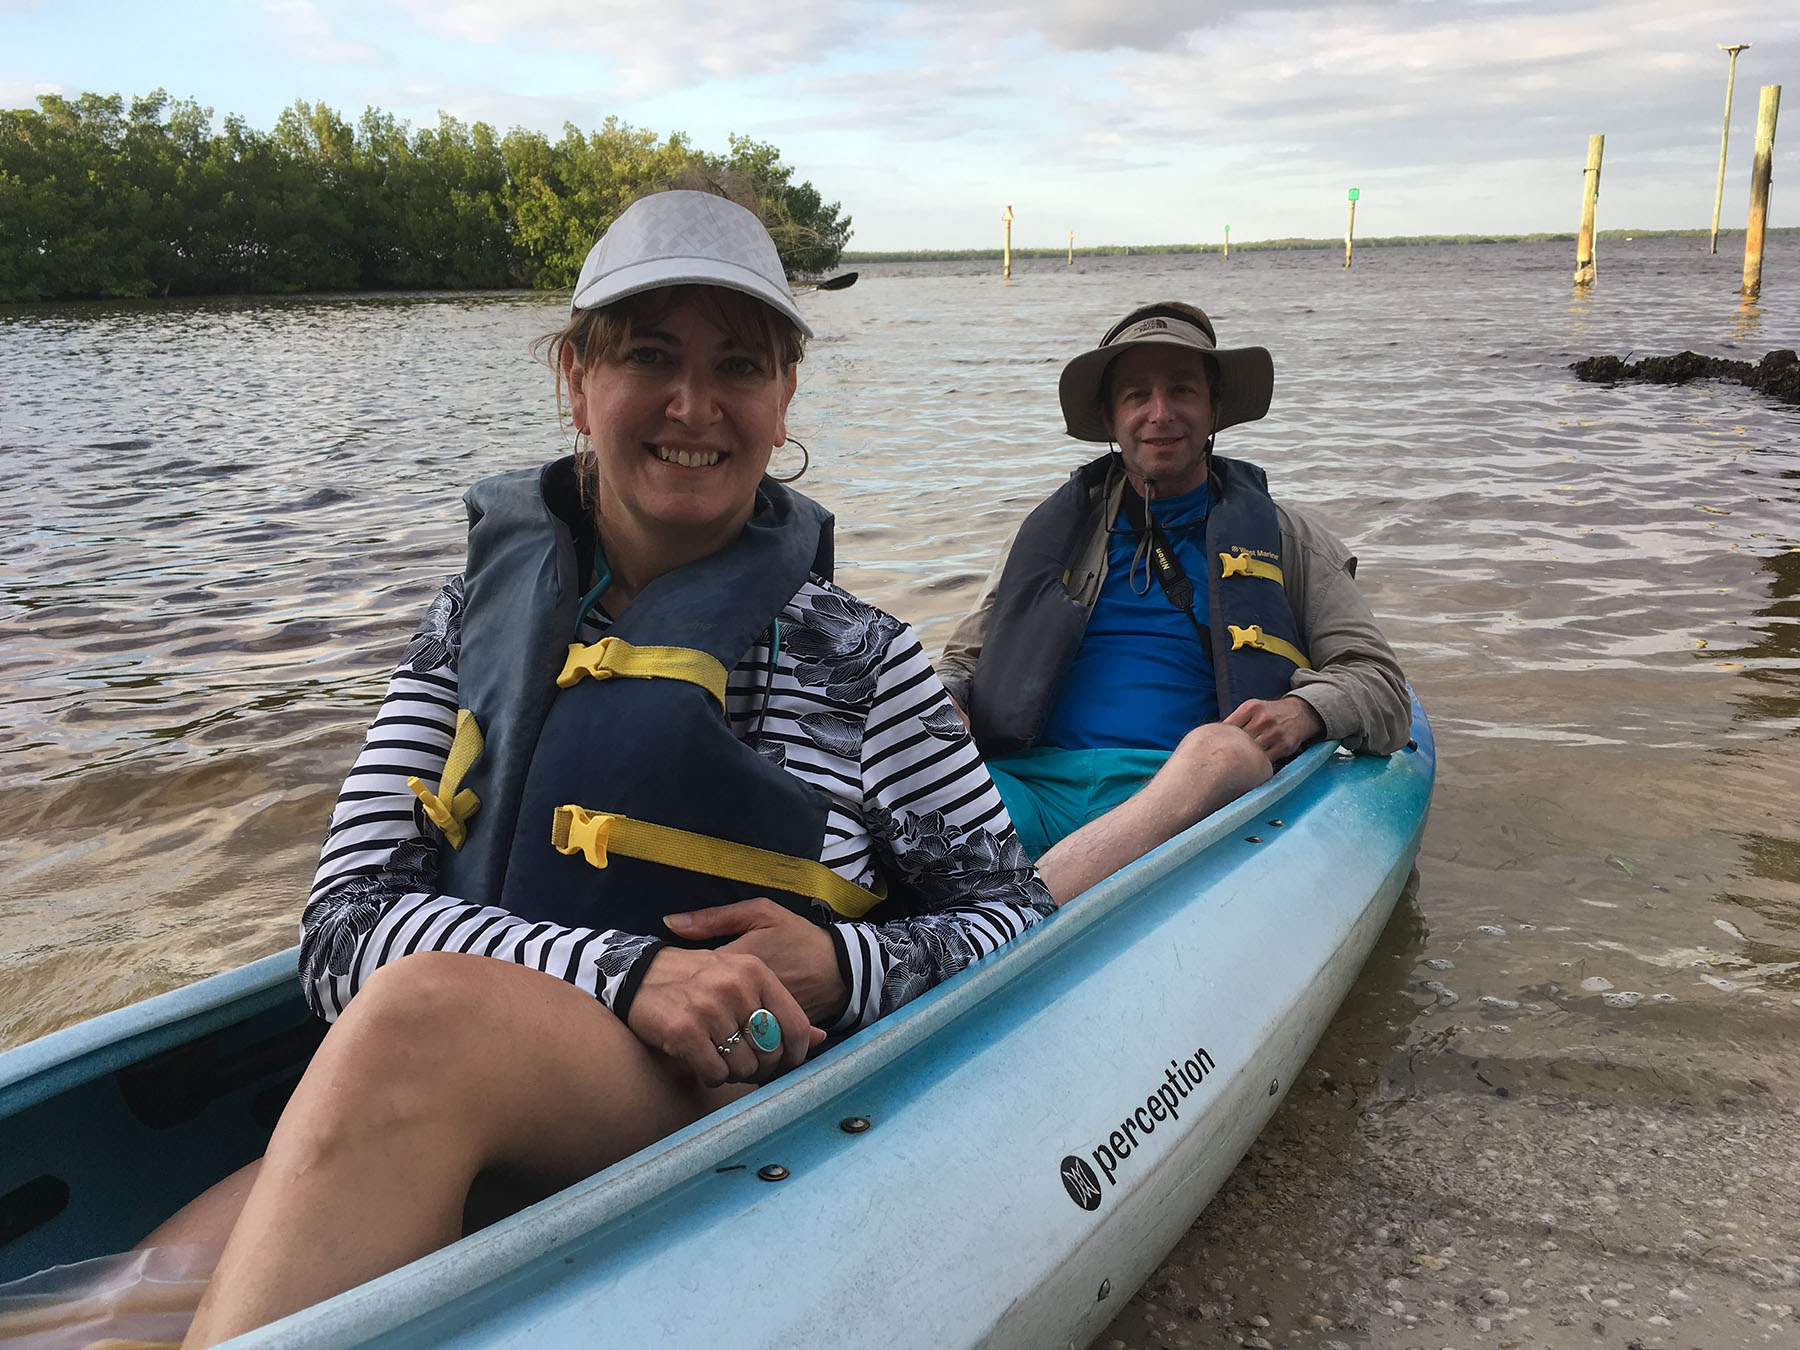 Alexandra and Bennett in the kayak to Sanibel, FL